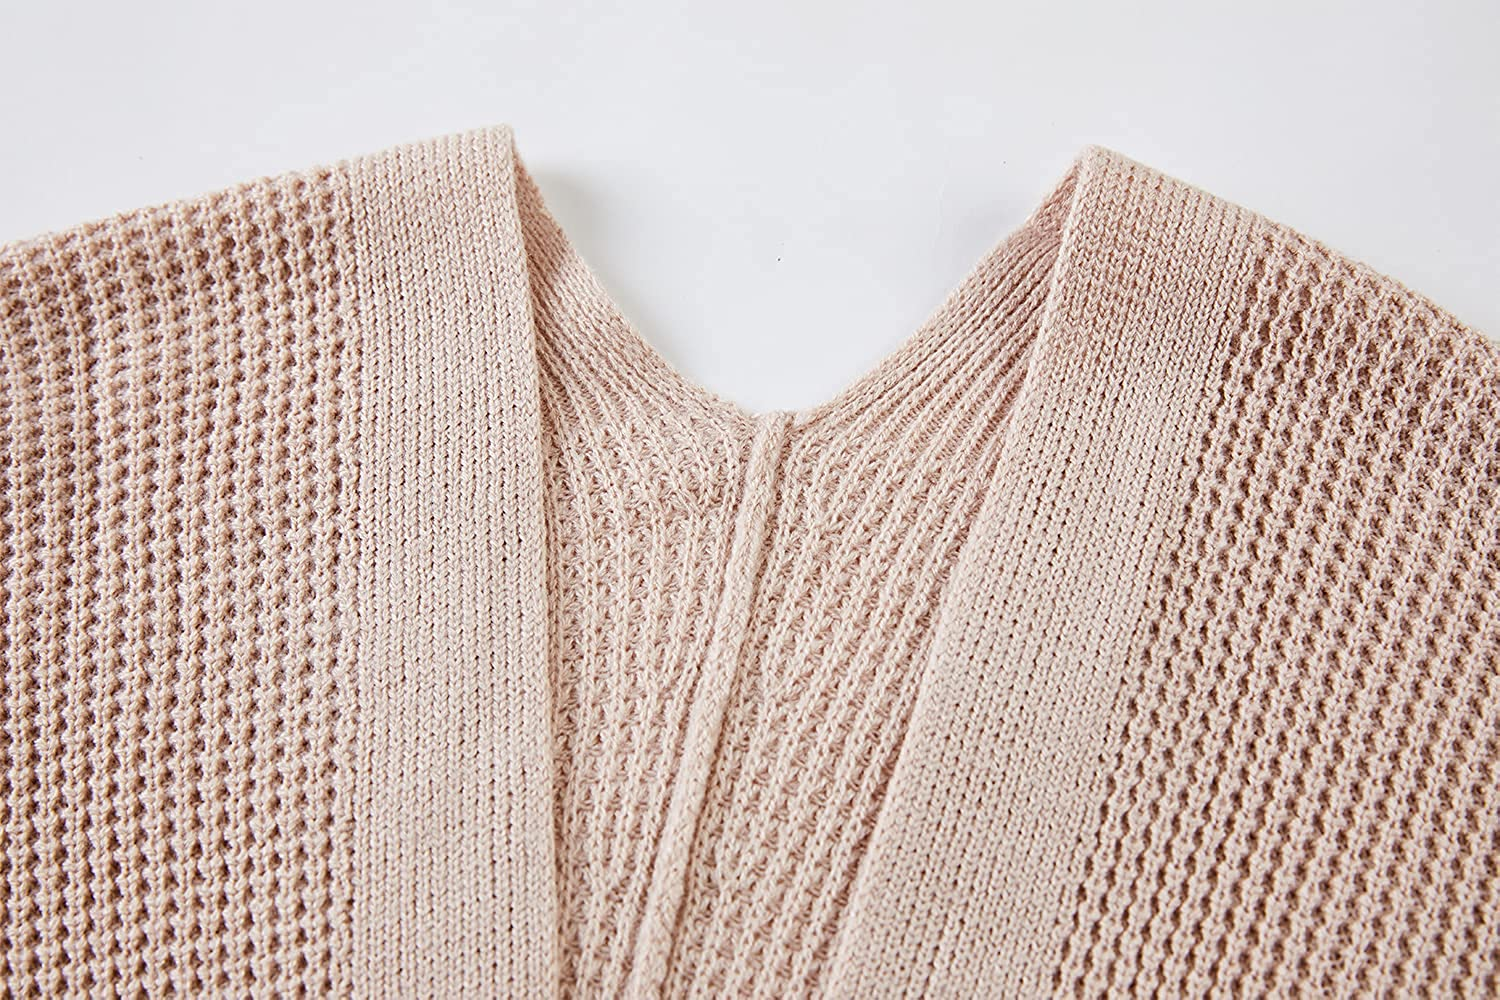 CCBSTS Womens Plus Size Open Front Lightweight Cardigan Long Sleeve Casual Draped Knit Sweater Cardigans